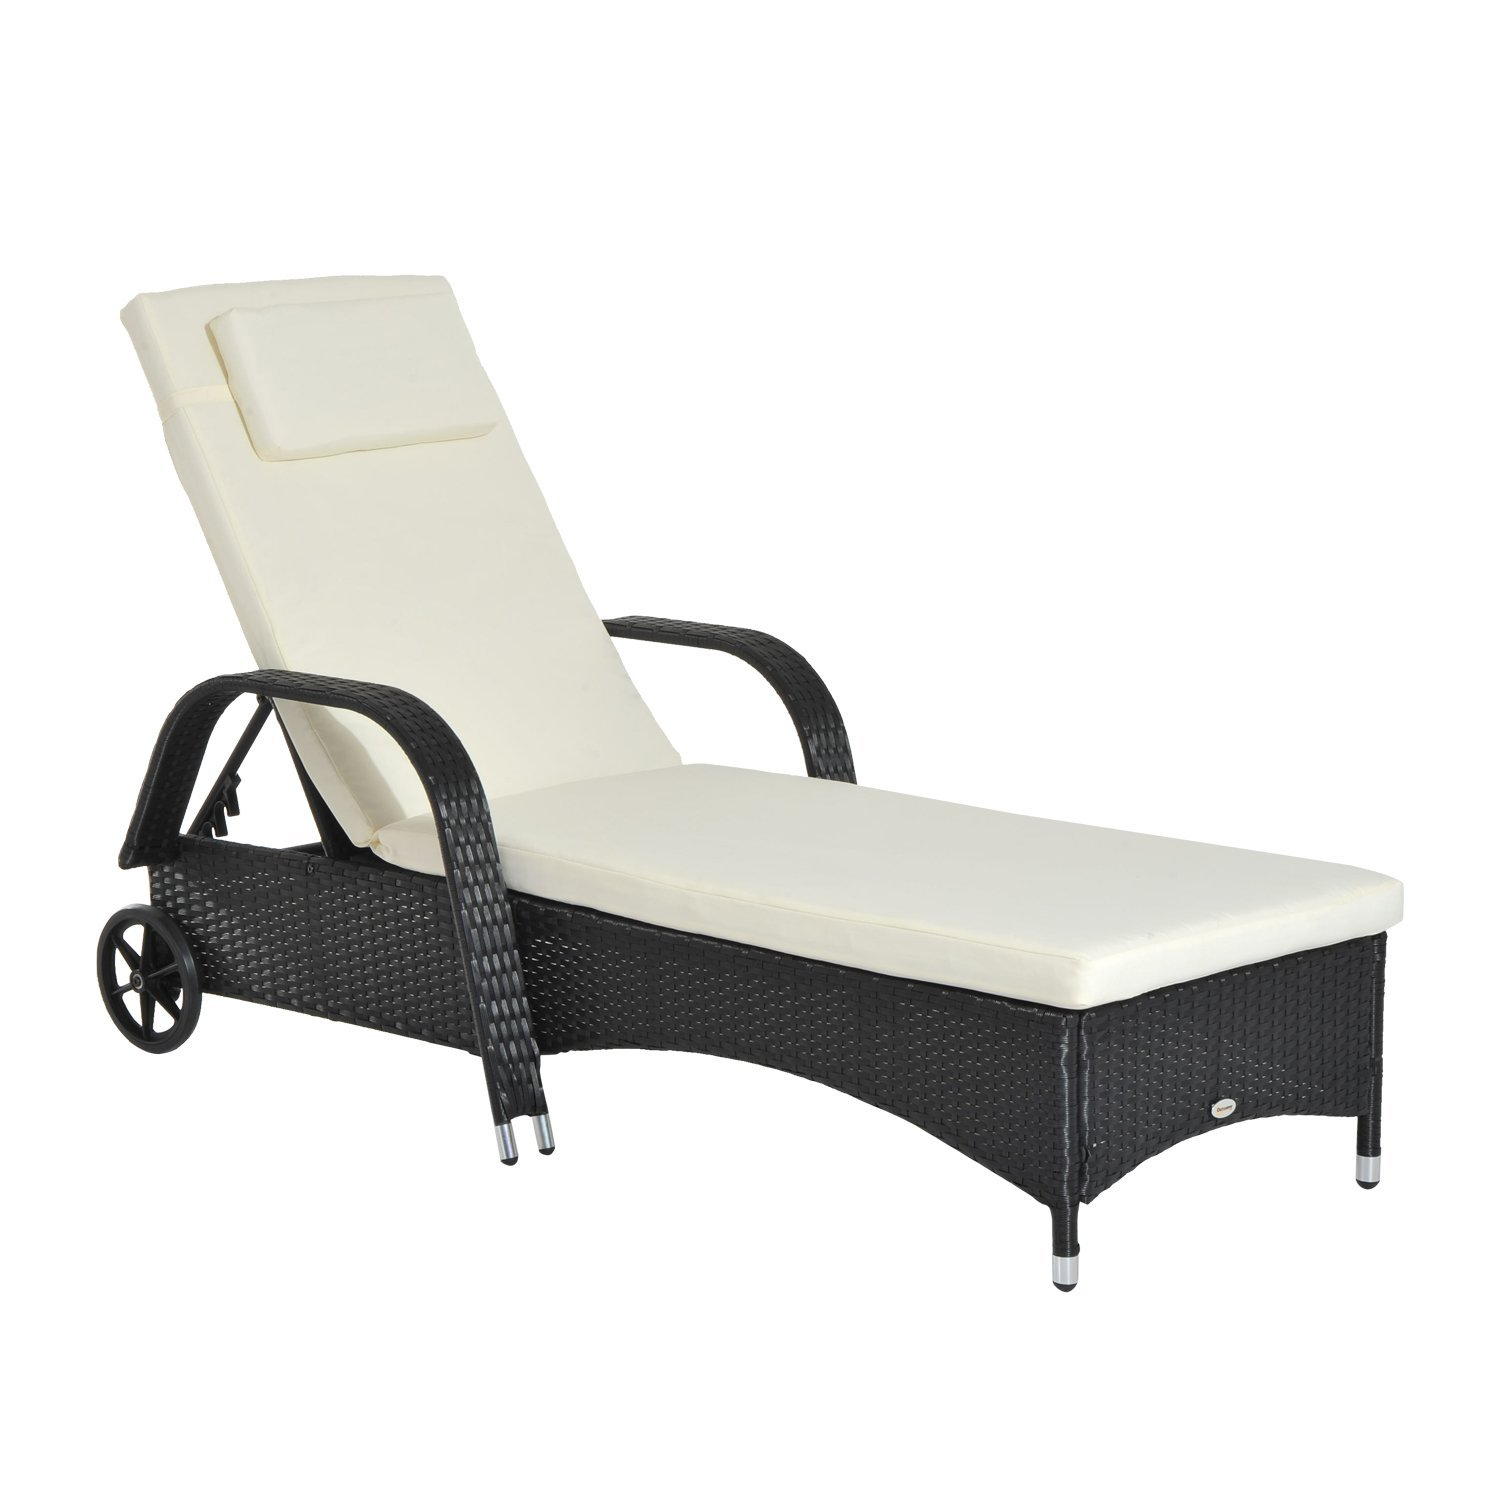 Outsunny Deck Chair Lounger Sun Height Adjustable with Wheels with Ruotete rattan Garden|Outdoor Bean Bag Sofas| |  - title=